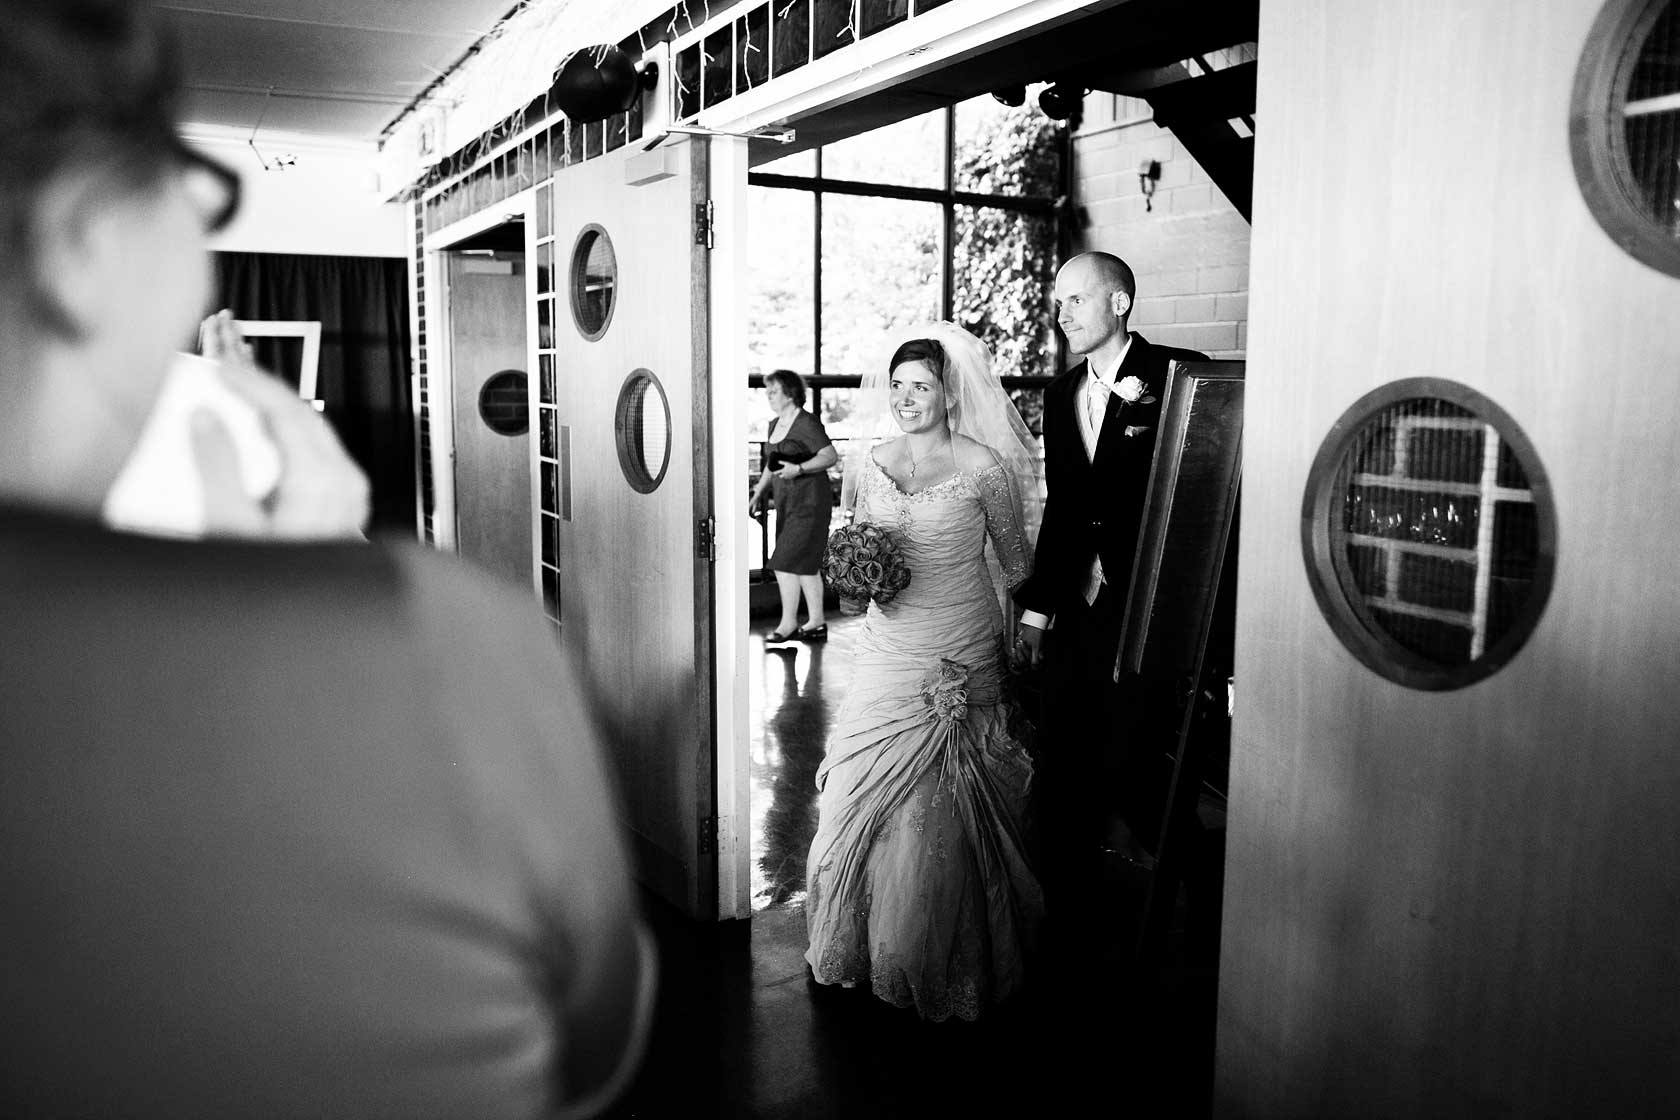 Reportage Wedding Photography at Westminster Boating Base